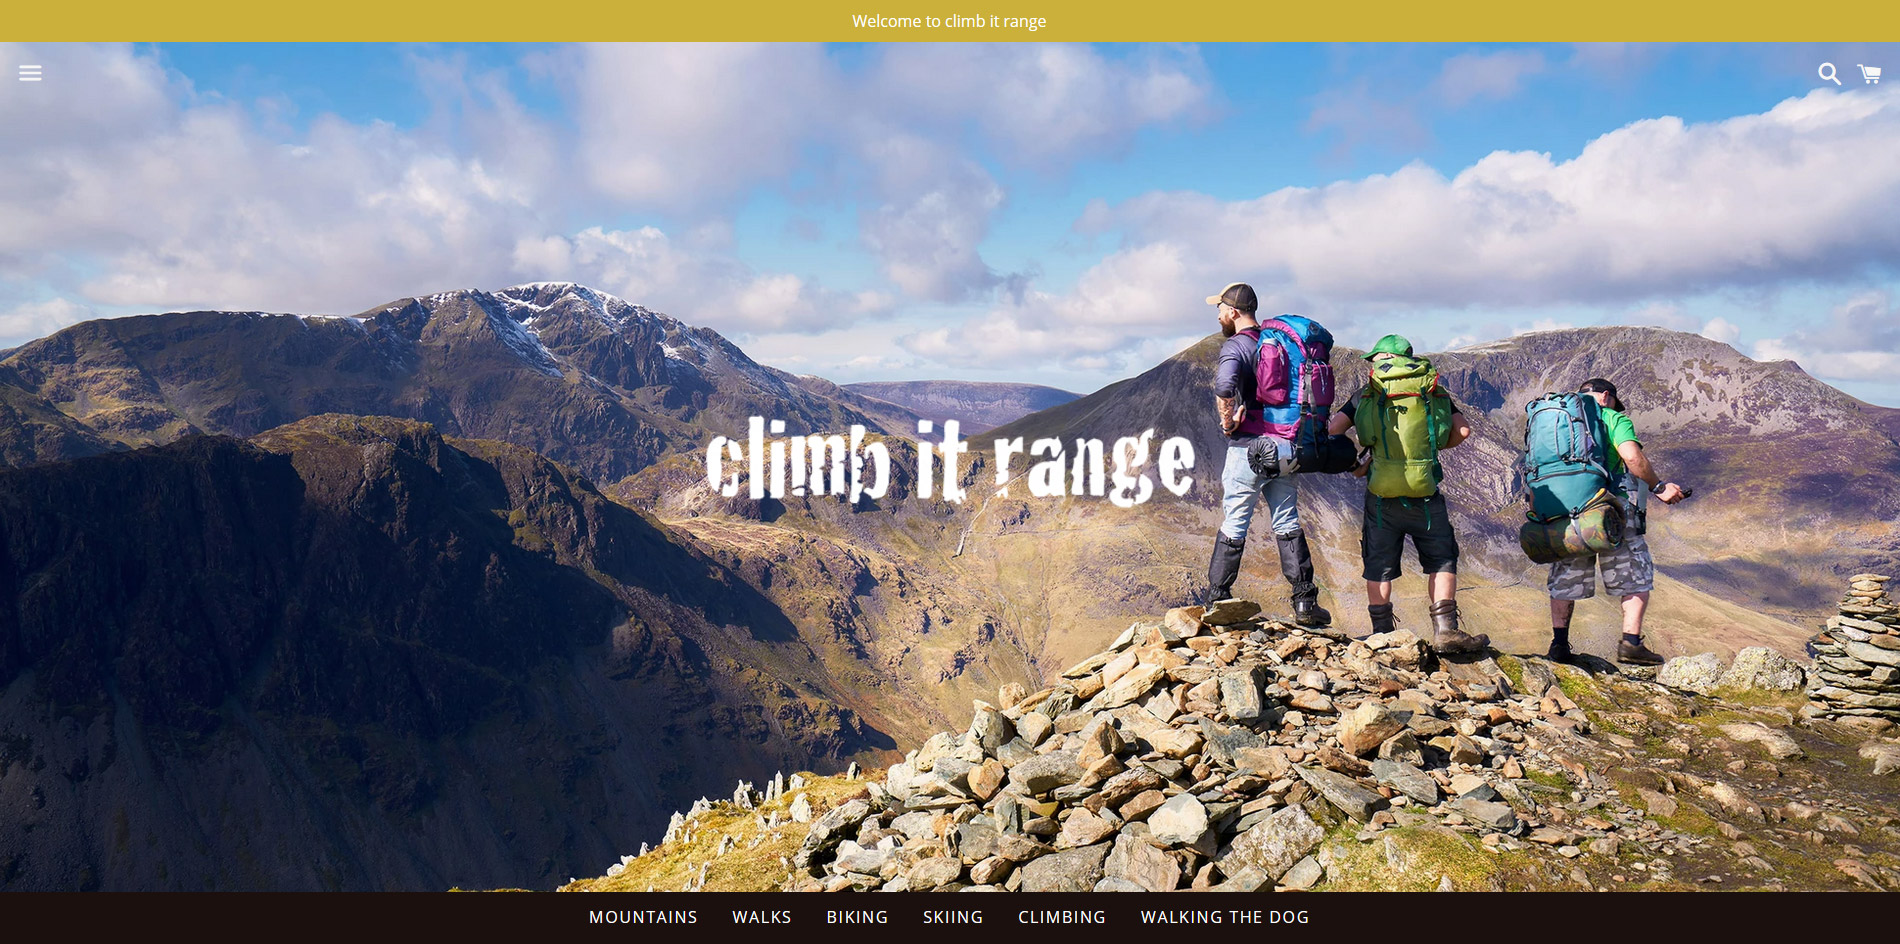 Climb it range website